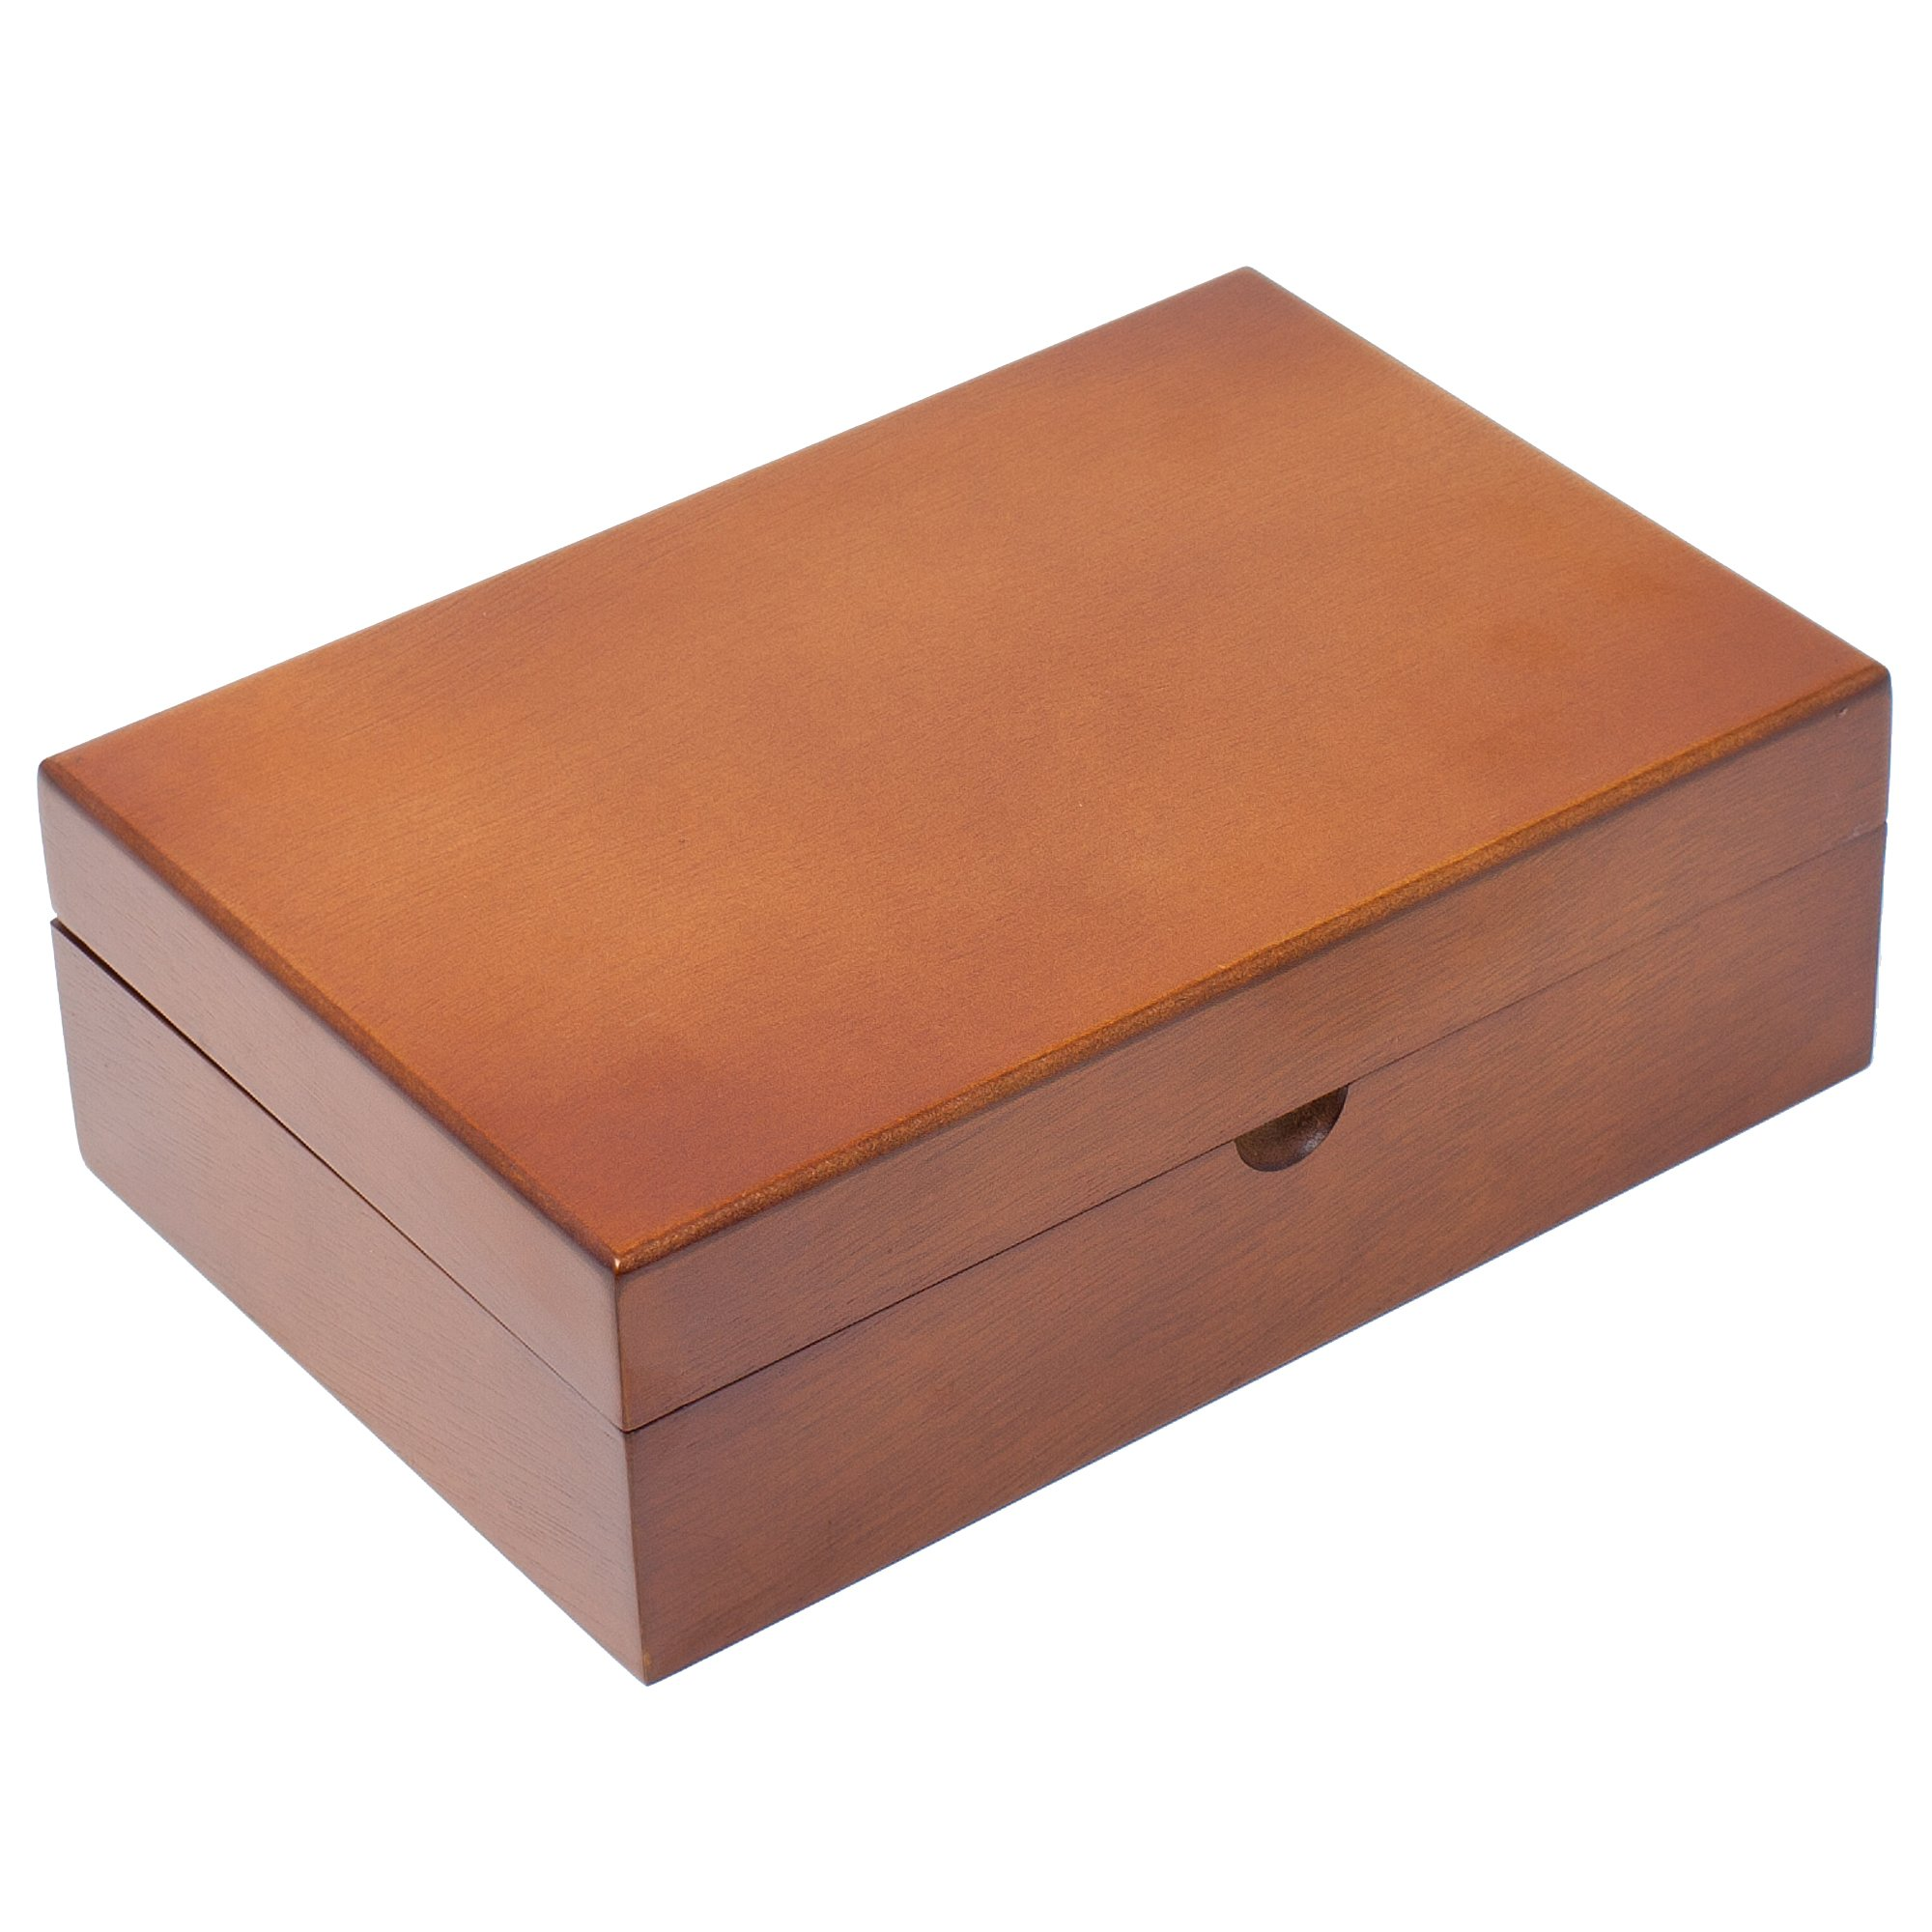 Caddy Bay Collection Memory Keepsake Mementos Jewelry Wood Gift Box Chest – Vintage Brown by Caddy Bay Collection (Image #2)